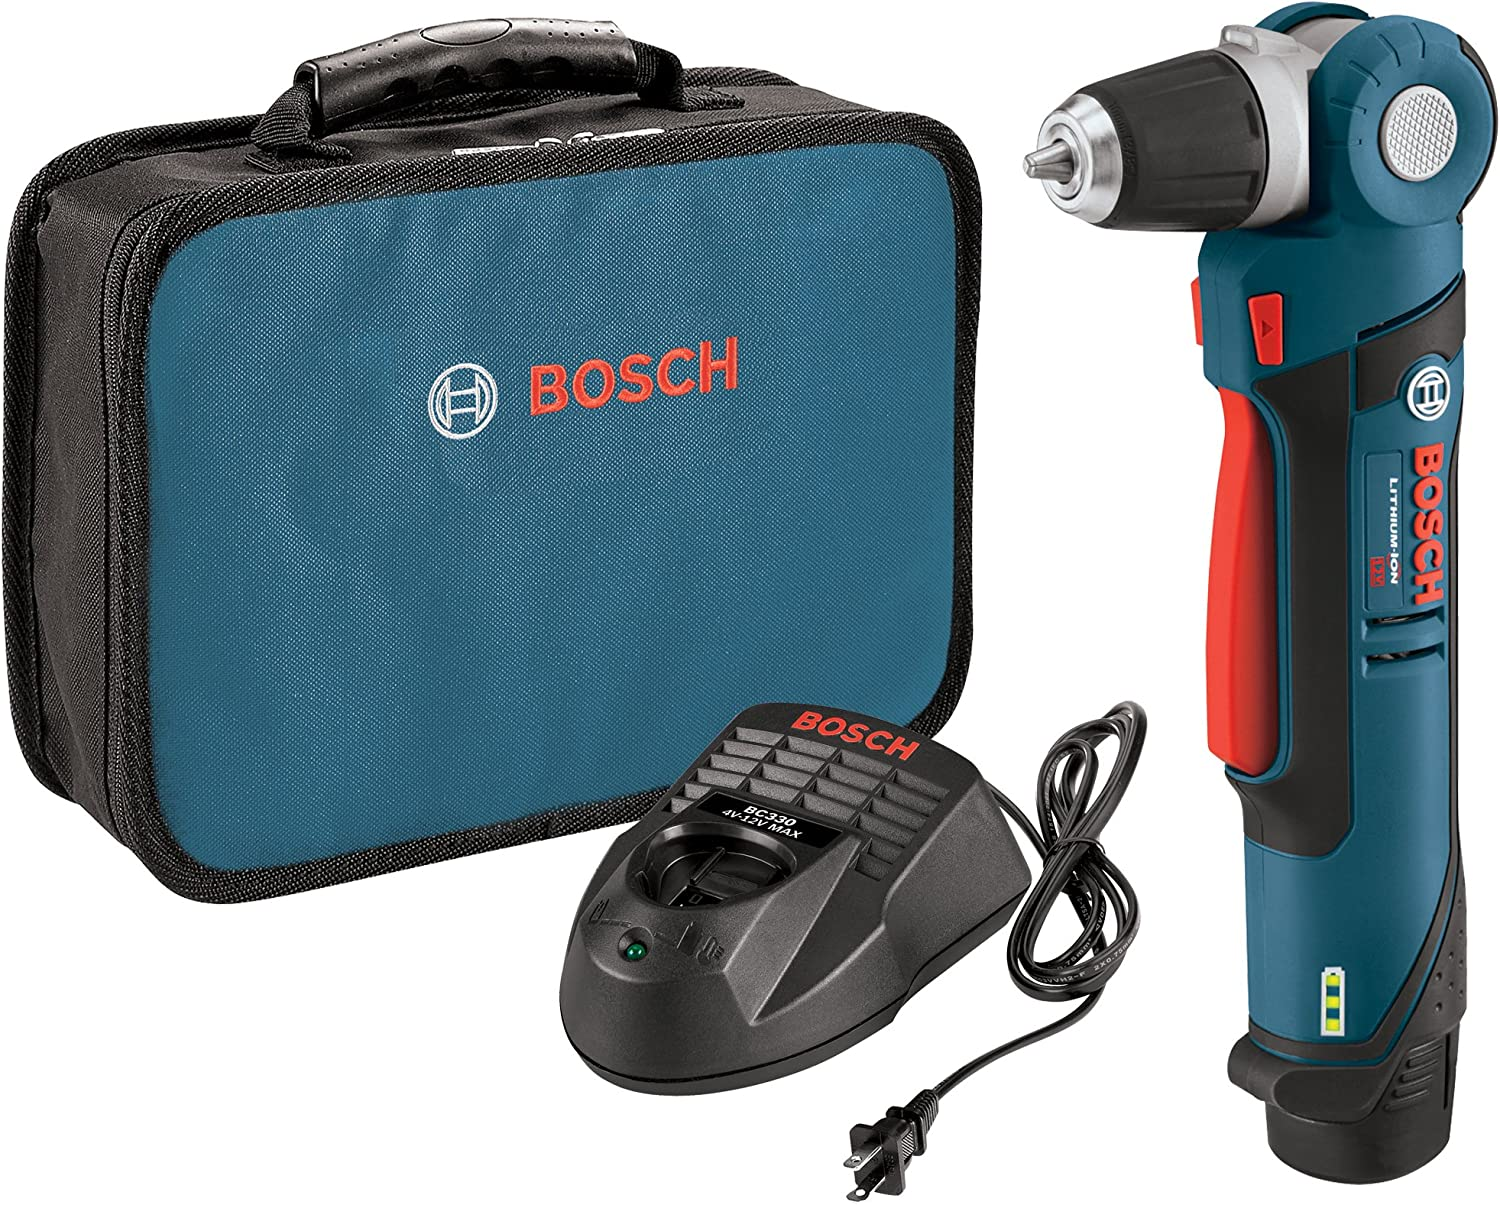 Bosch PS11-102 12-Volt Lithium-Ion Max 3 8-Inch Right Angle Drill Driver Kit with 1 High Capacity Battery and Charger